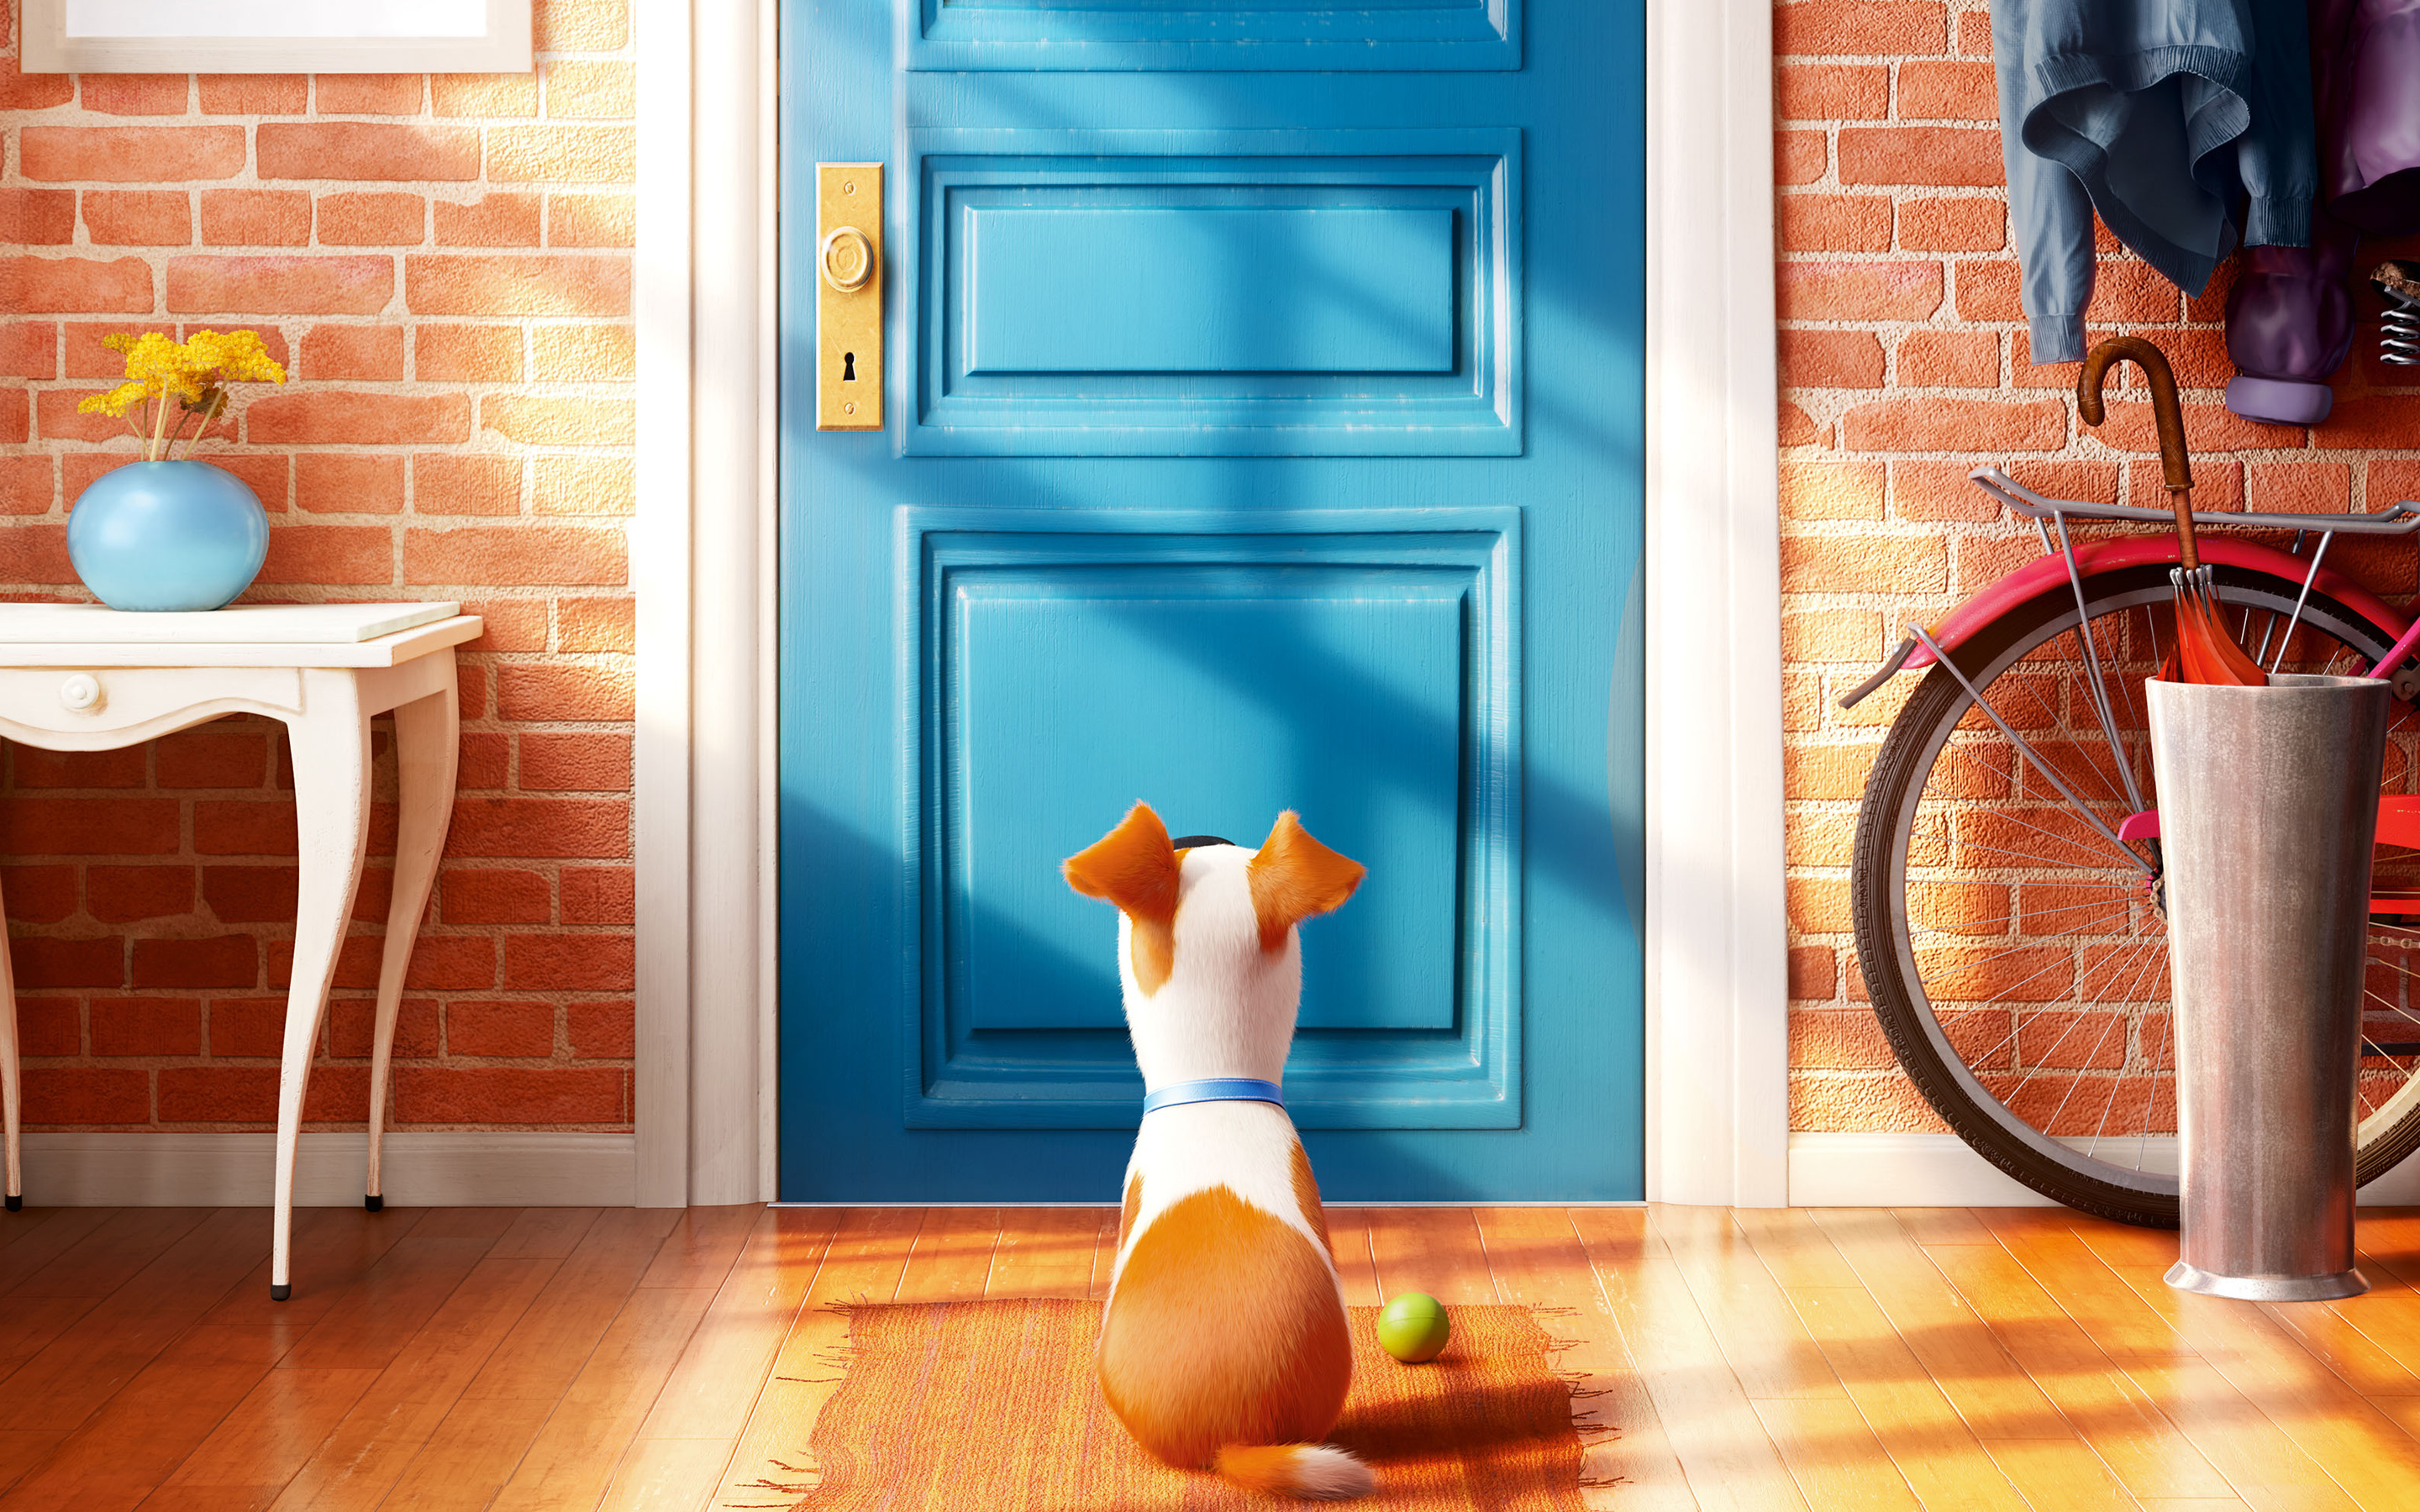 The Secret Life Of Pets 2016 Hindi Download: 2016 The Secrete Life Of Pets, HD Movies, 4k Wallpapers